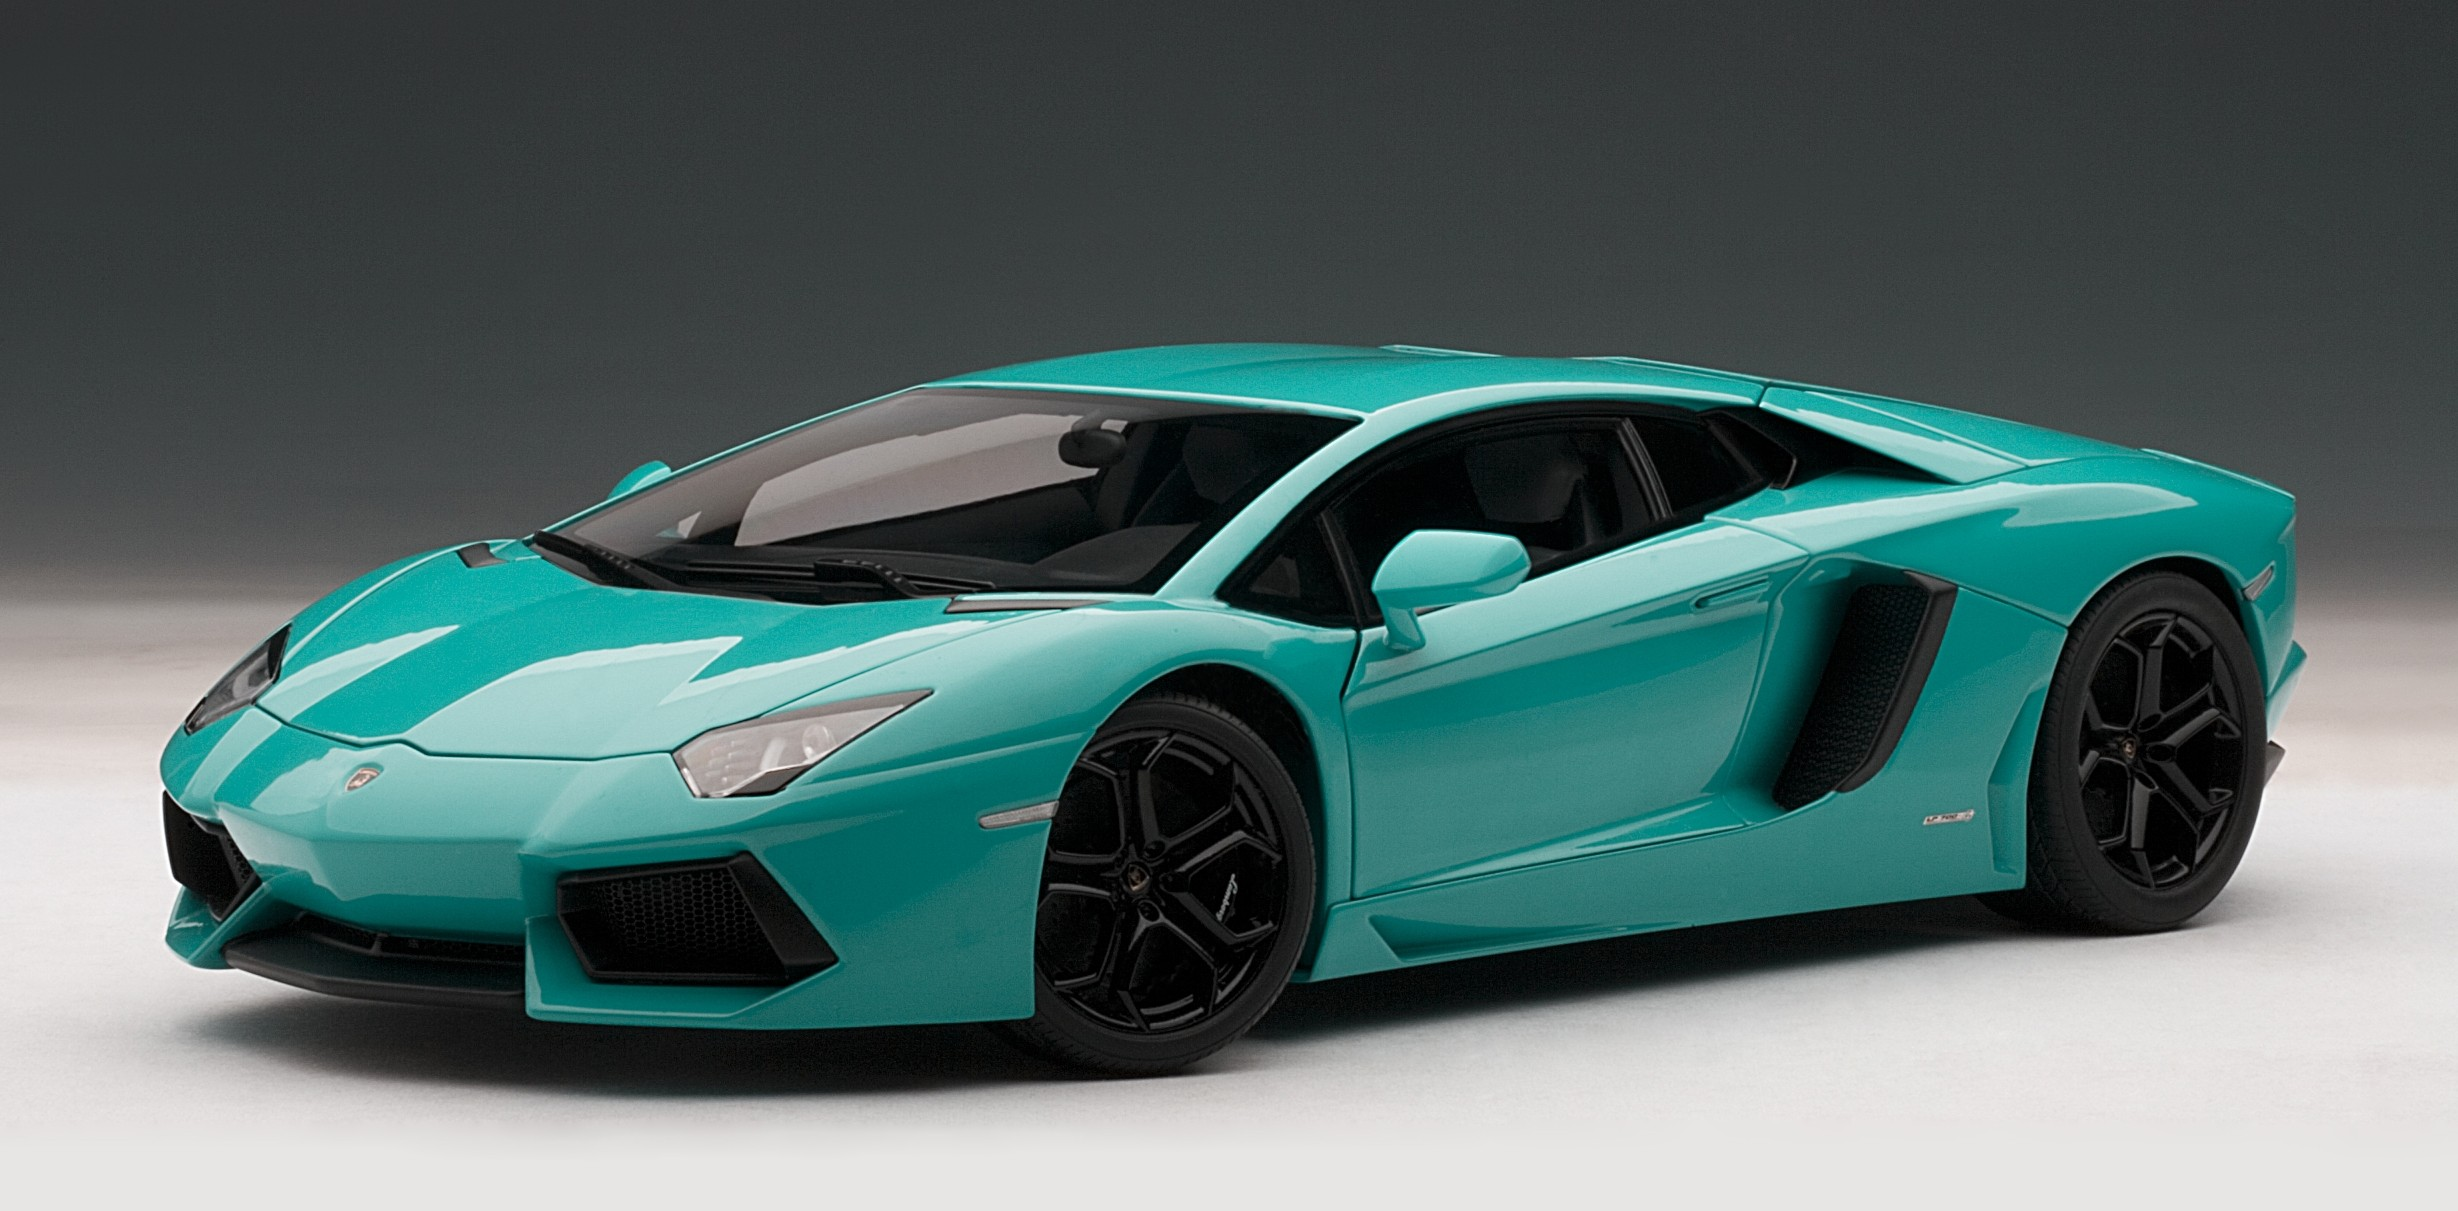 2015 Green Lamborghini Aventador Sports Car Wallpaper